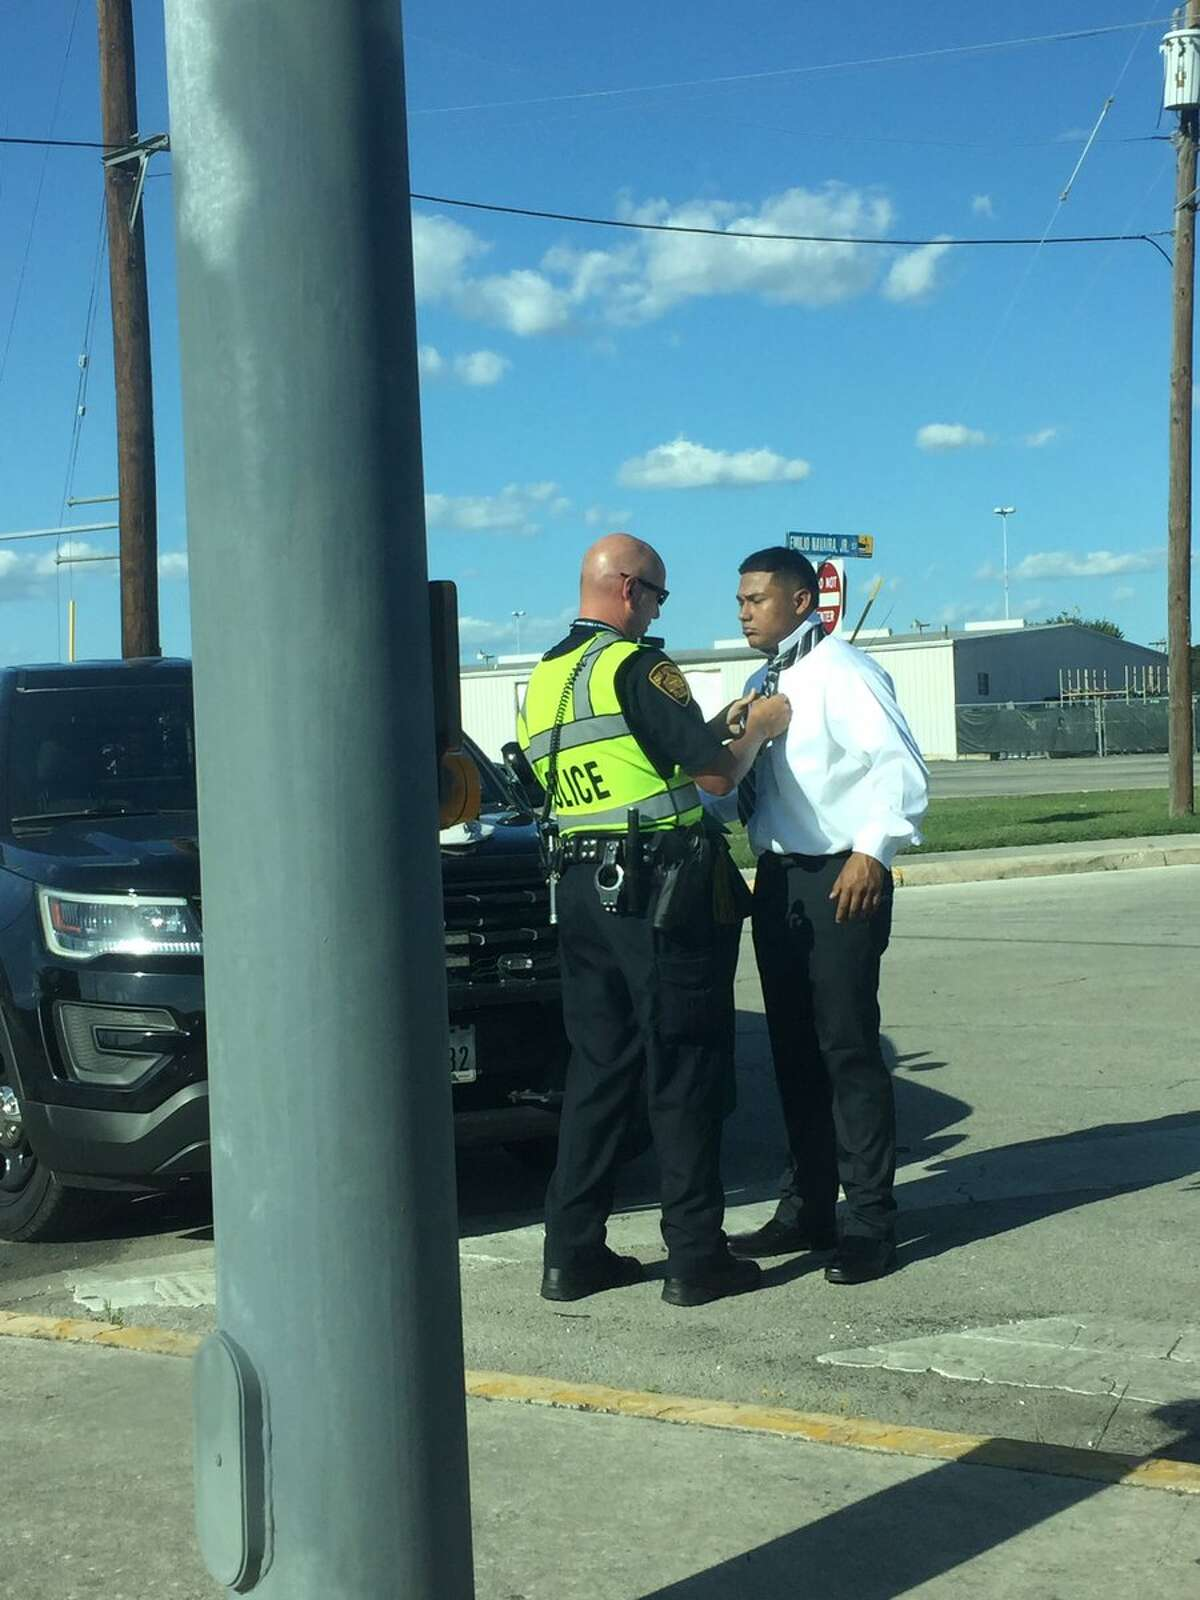 Holmes High School graduate Robert Perez got tie help from an unidentified SAPD officer before his graduation on June 6, 2017.